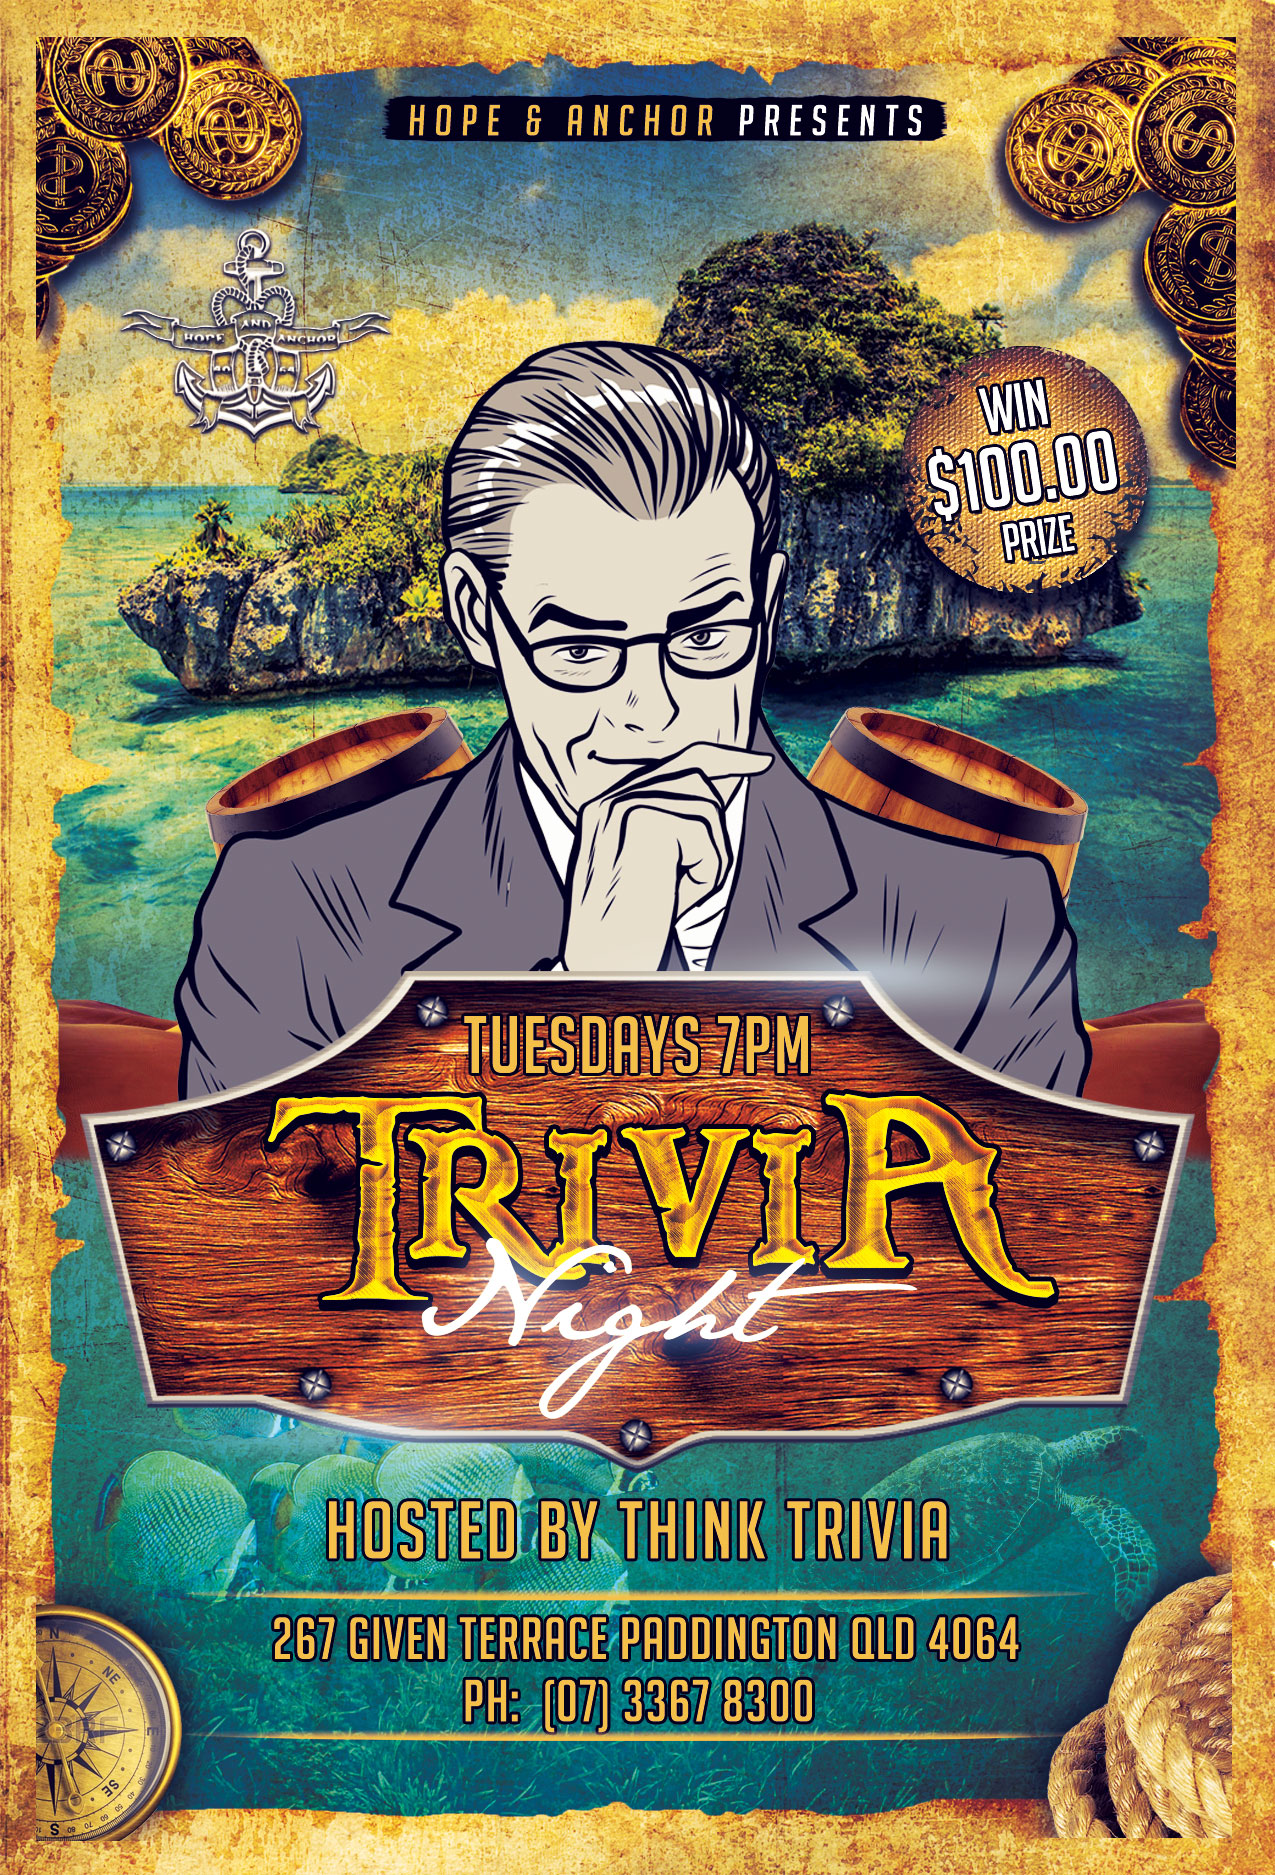 Hope and Anchor - Paddington - Tuesday Trivia @ Hope and Anchor | Paddington | Queensland | Australia